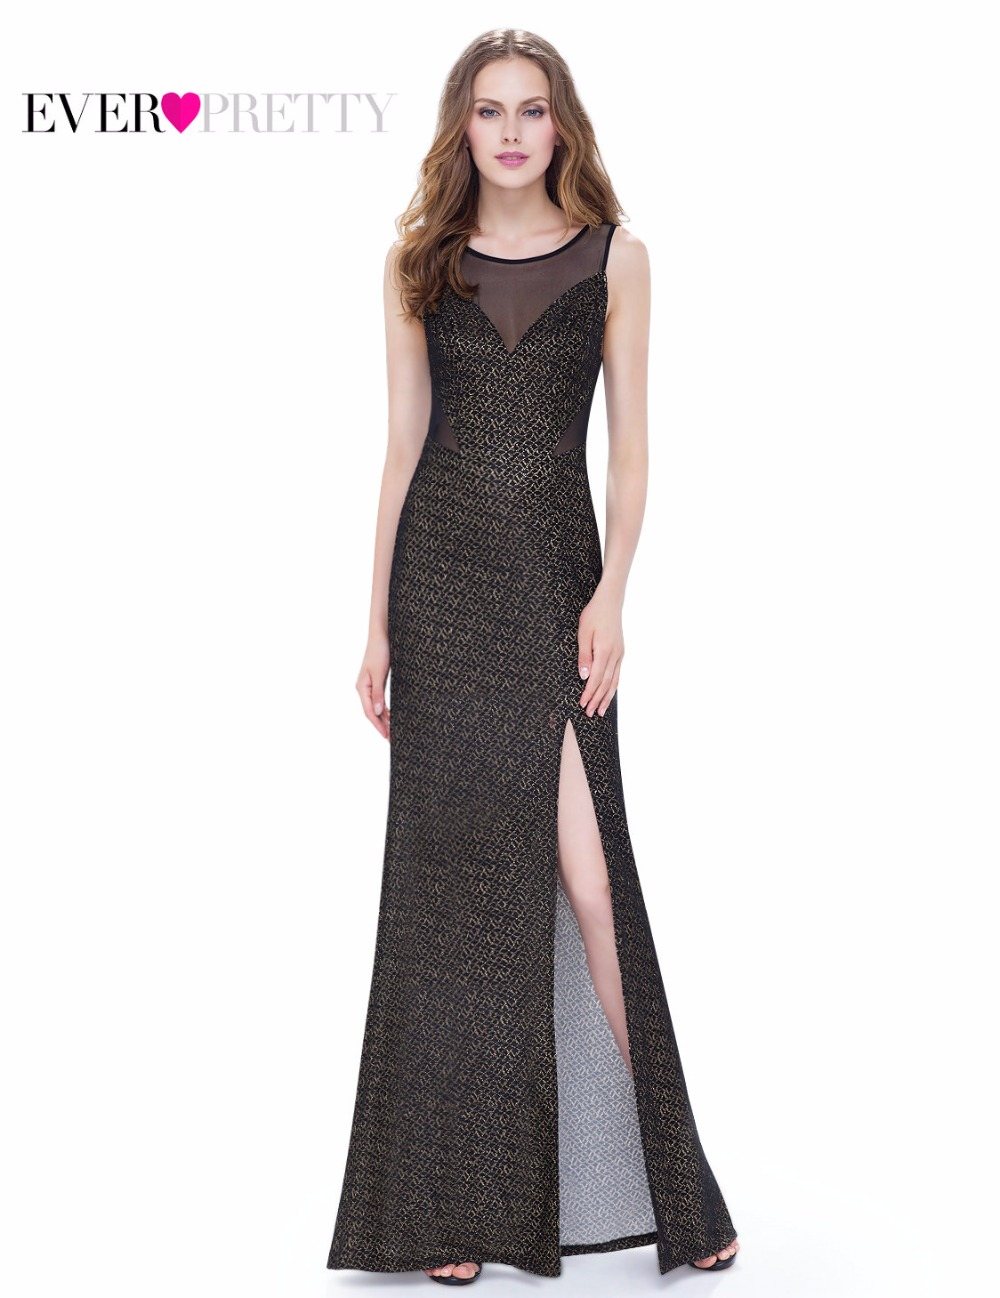 Black Evening Party Dress Women Round Neck Hot Selling EP08952BK Sleeveless Ever Pretty Unique Side Slit Dress  2017